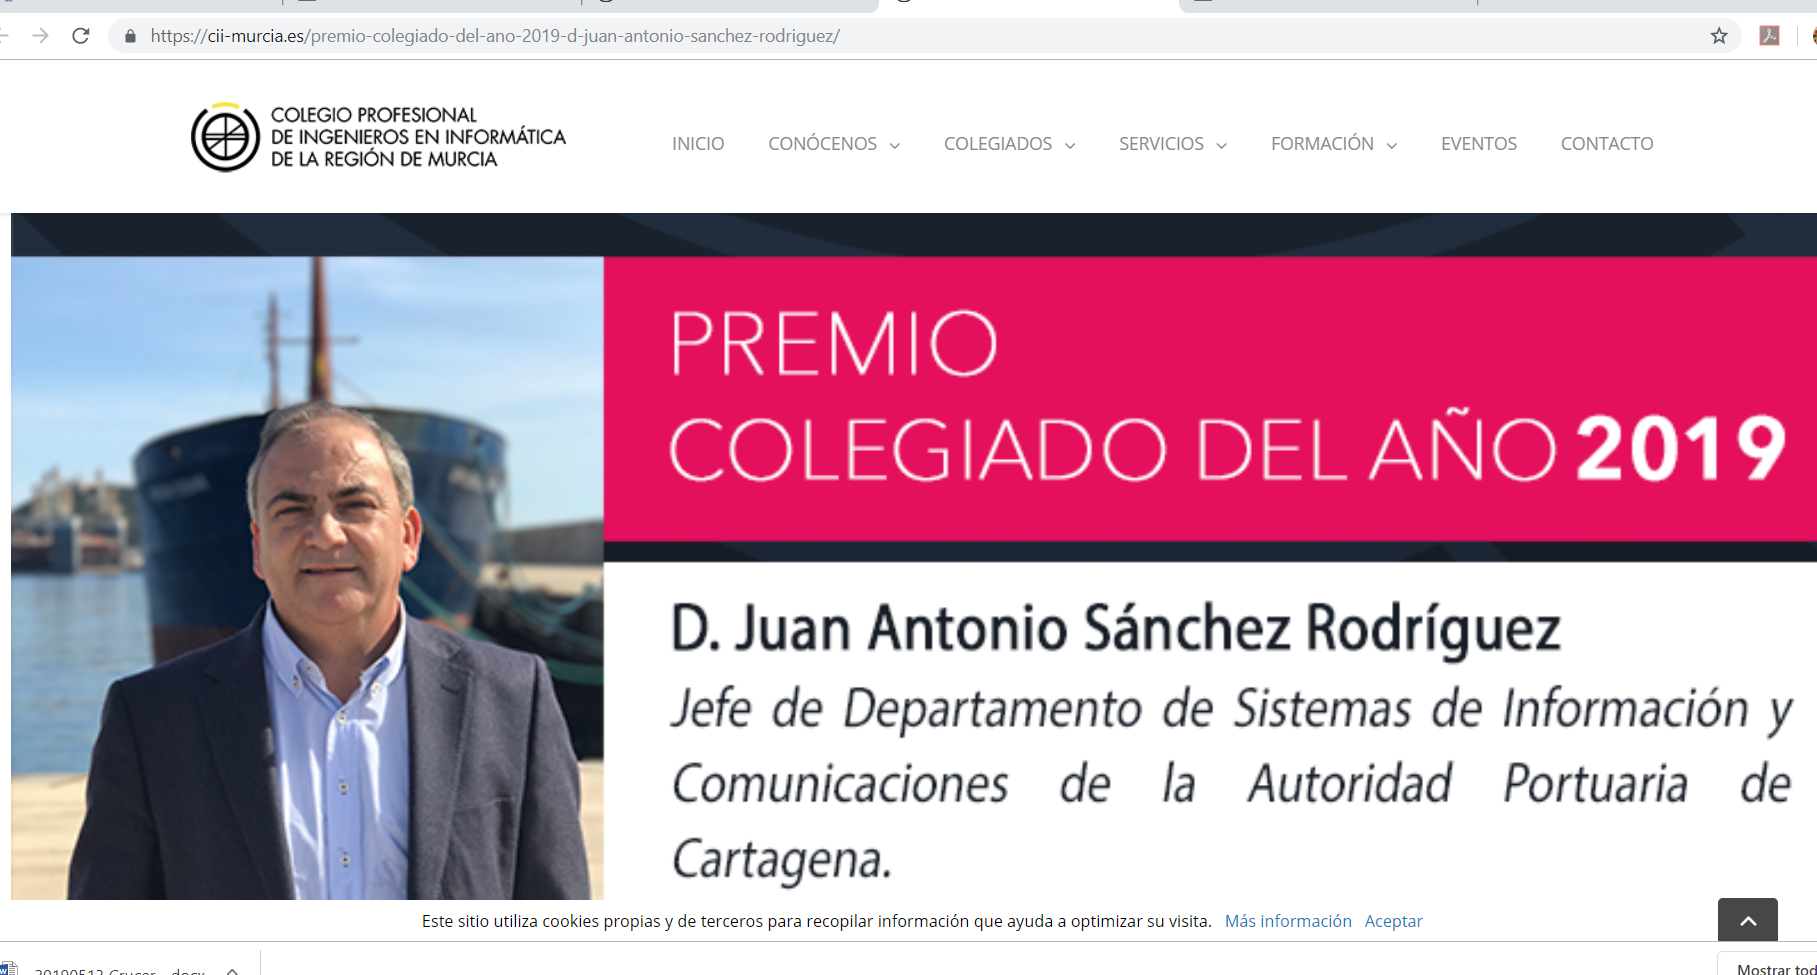 JUAN ANTONIO SÁNCHEZ ELECTED ENGINEER OF THE YEAR 2019